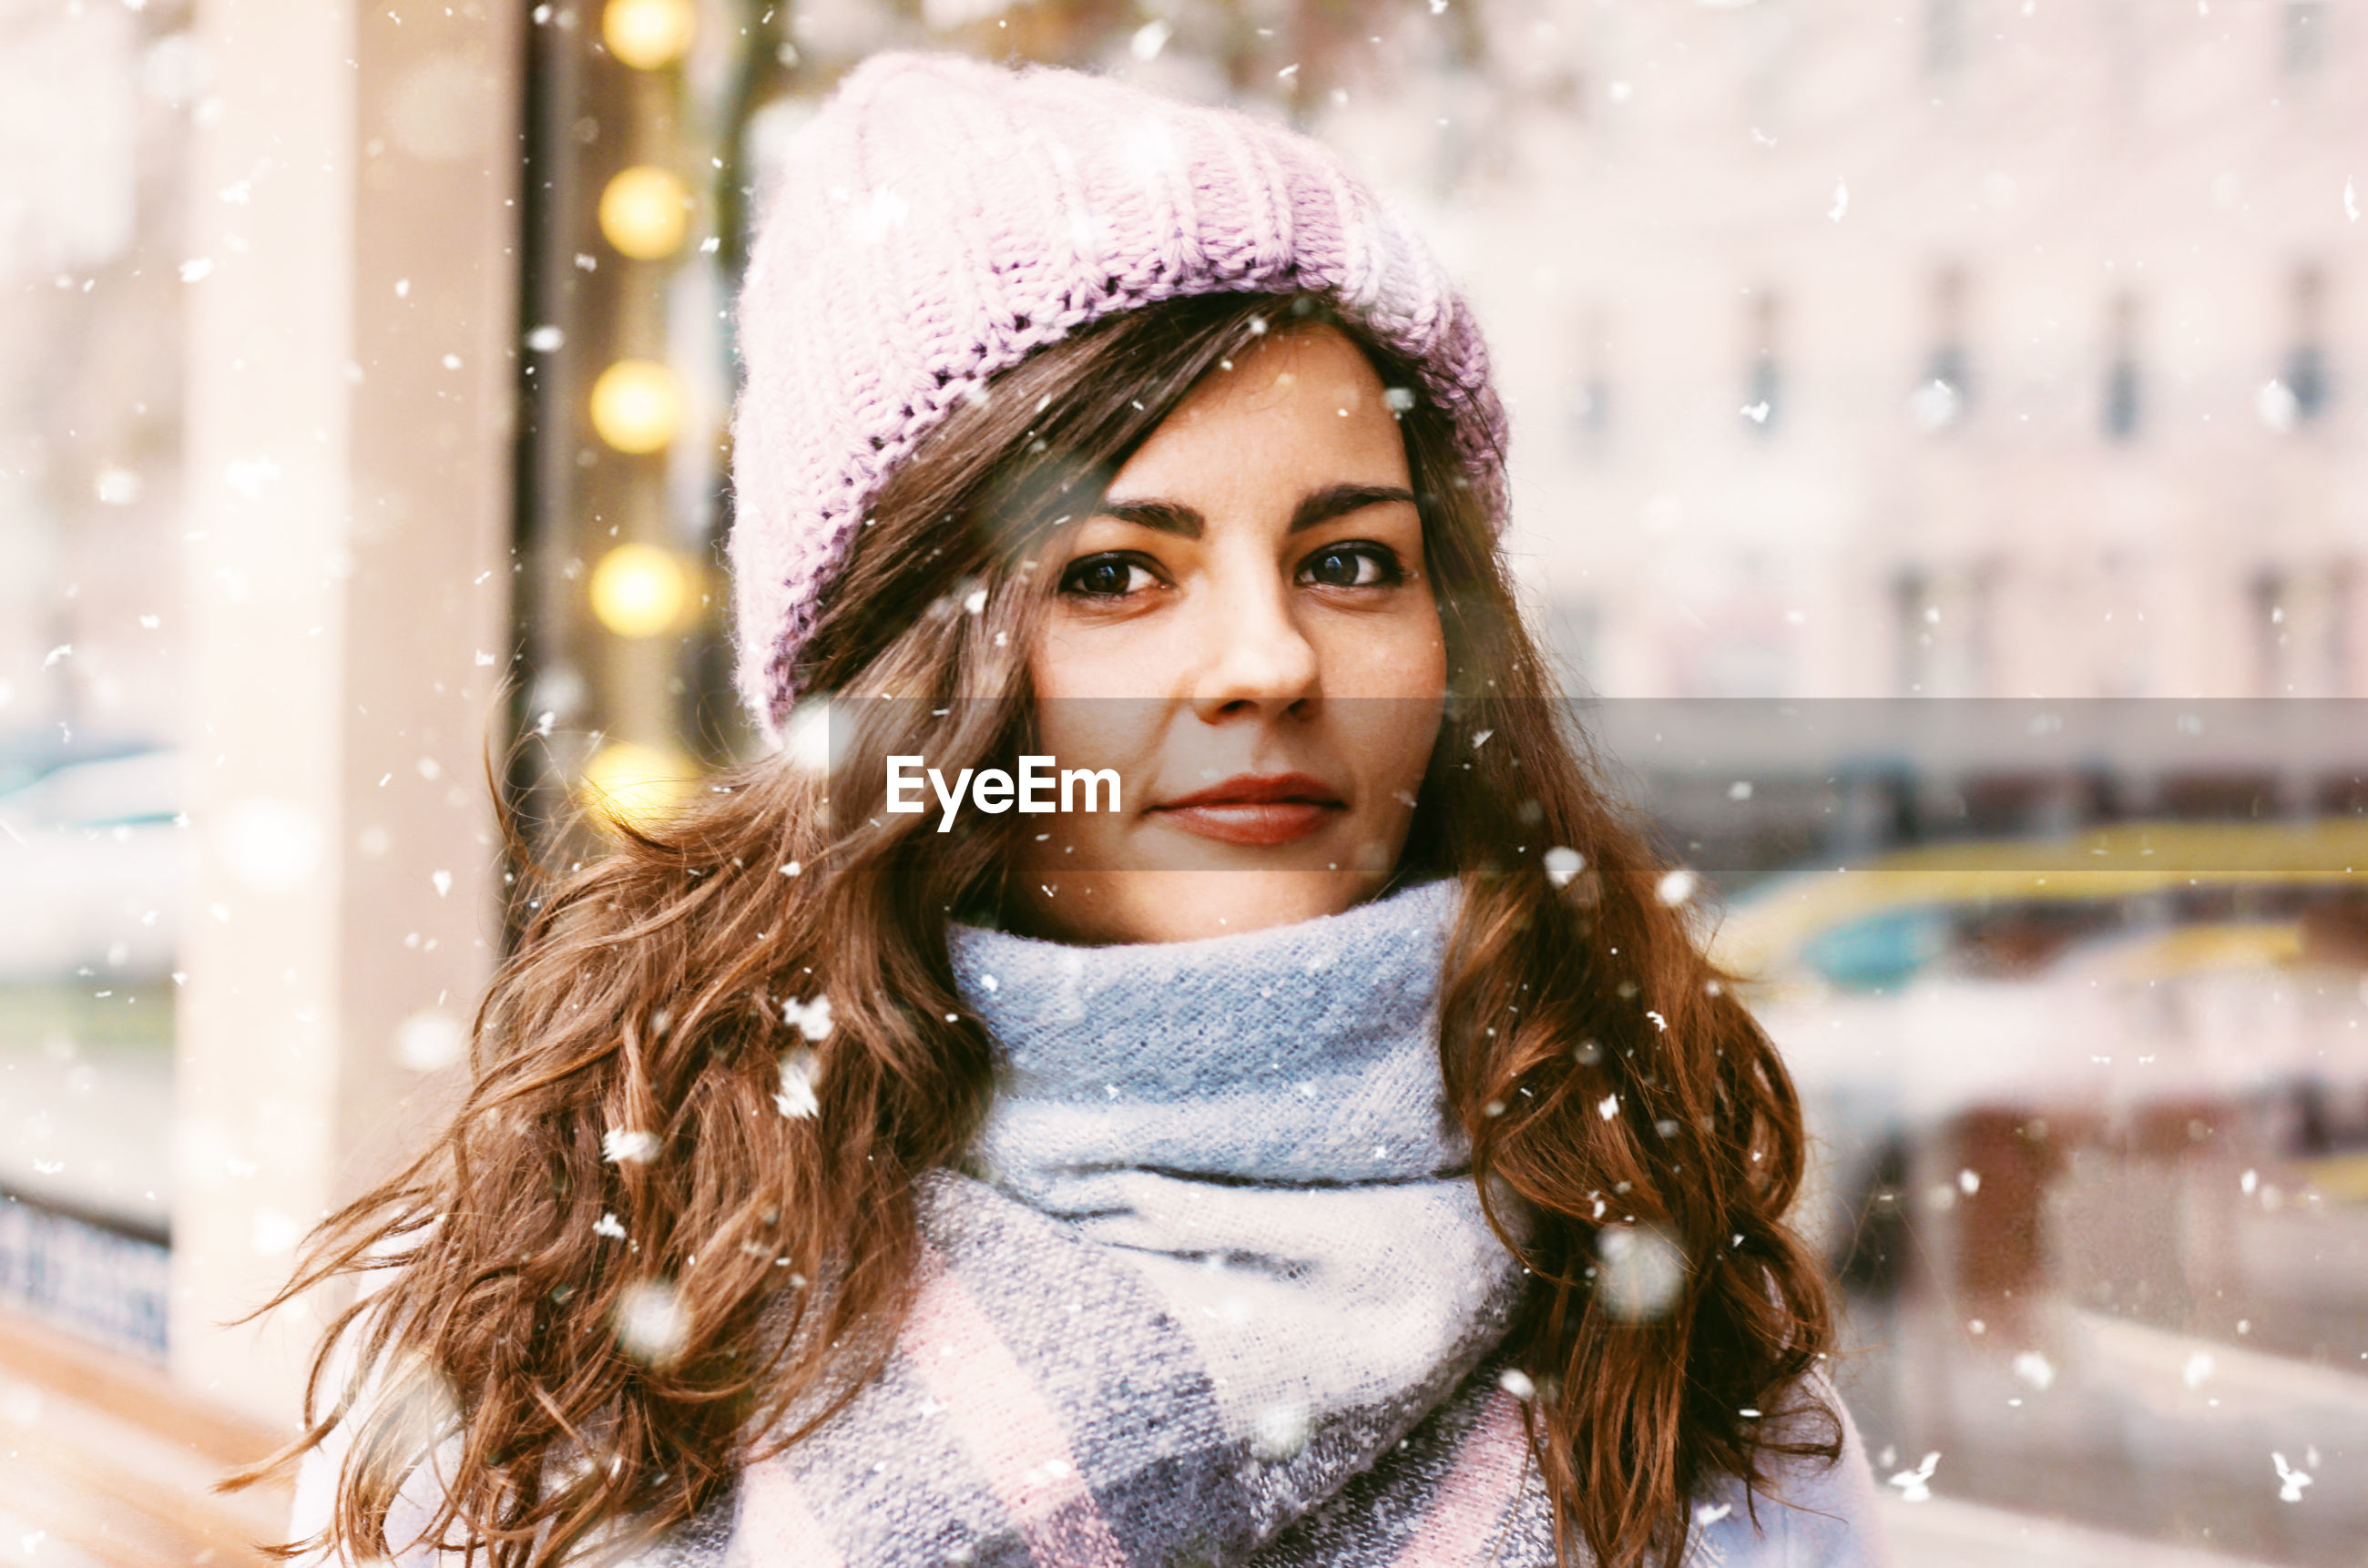 Portrait of young woman standing against building during snowfall